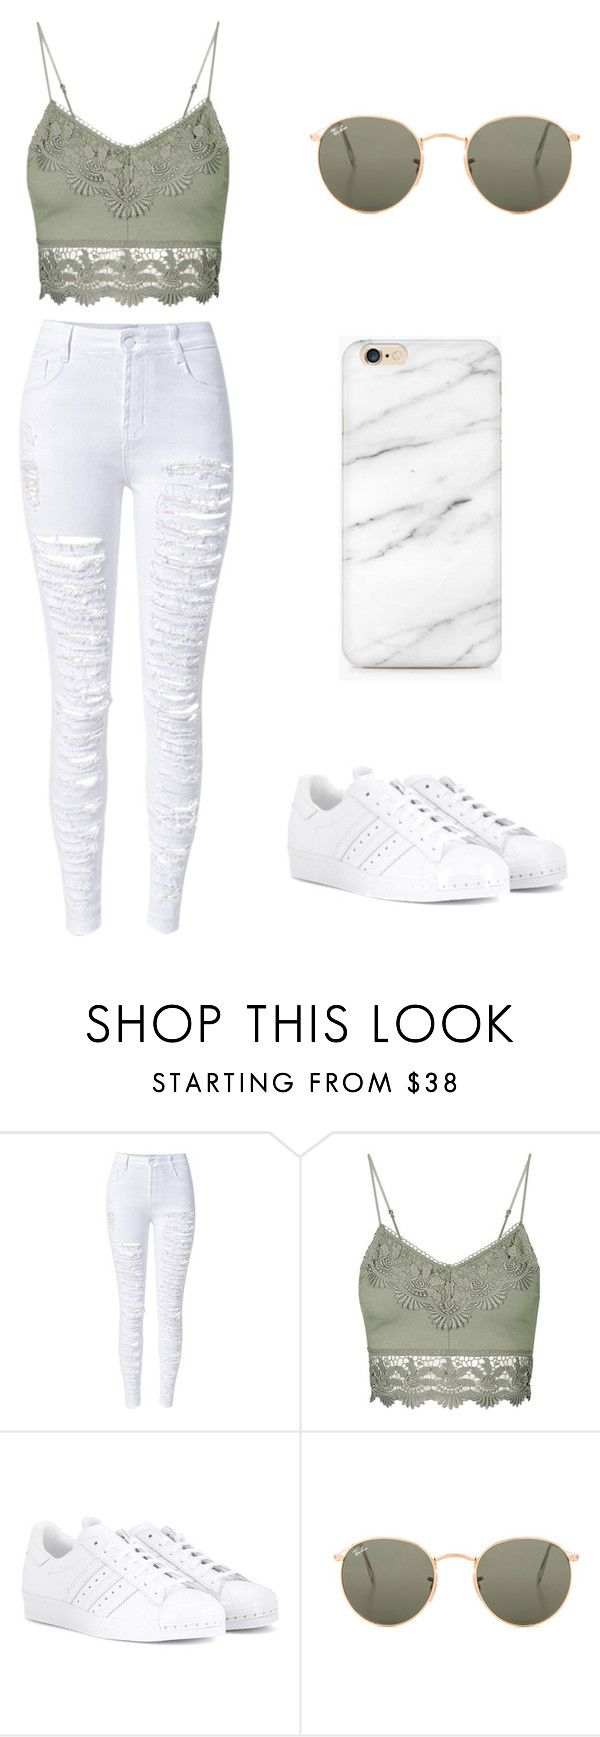 """""""Sem título #2"""" by nicmd ❤ liked on Polyvore featuring WithChic, Topshop, adidas and Ray-Ban"""